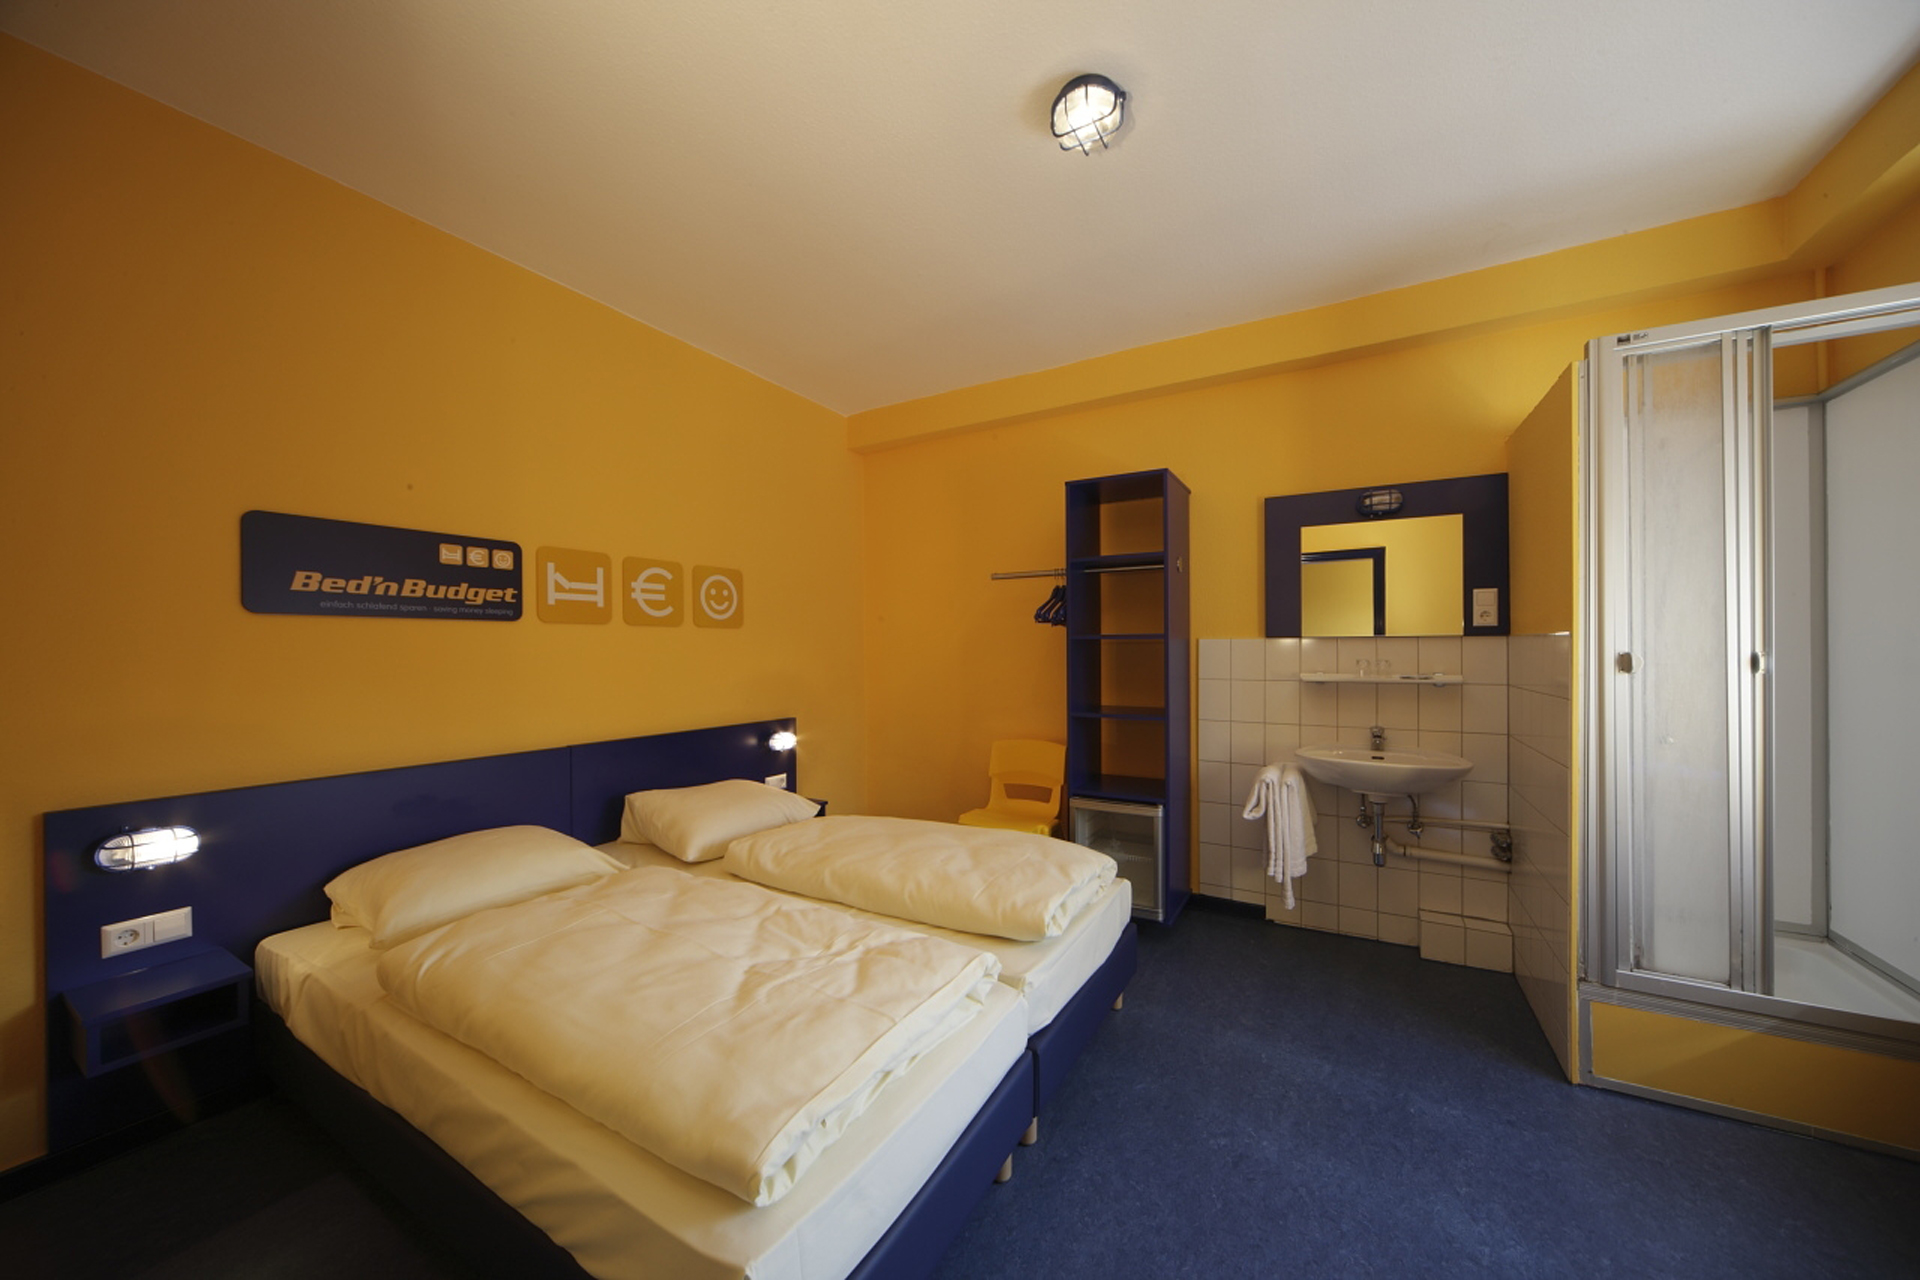 Bed´nBudget Hostel Hannover